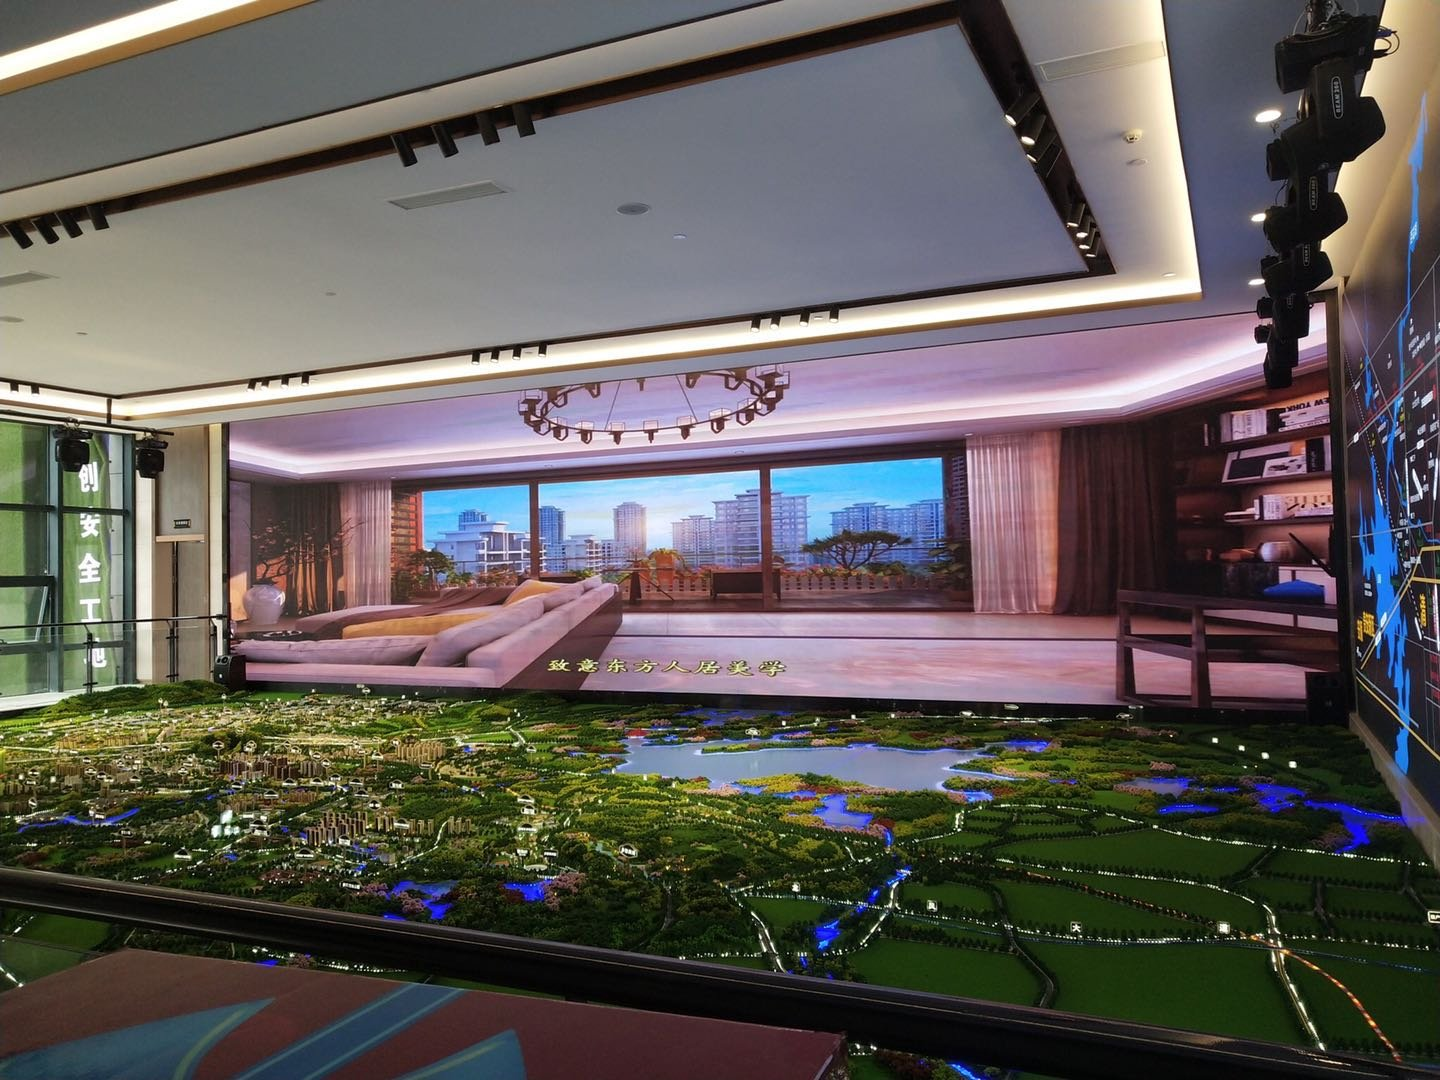 P3 Indoor Led Display In The Sales Hall Of The House